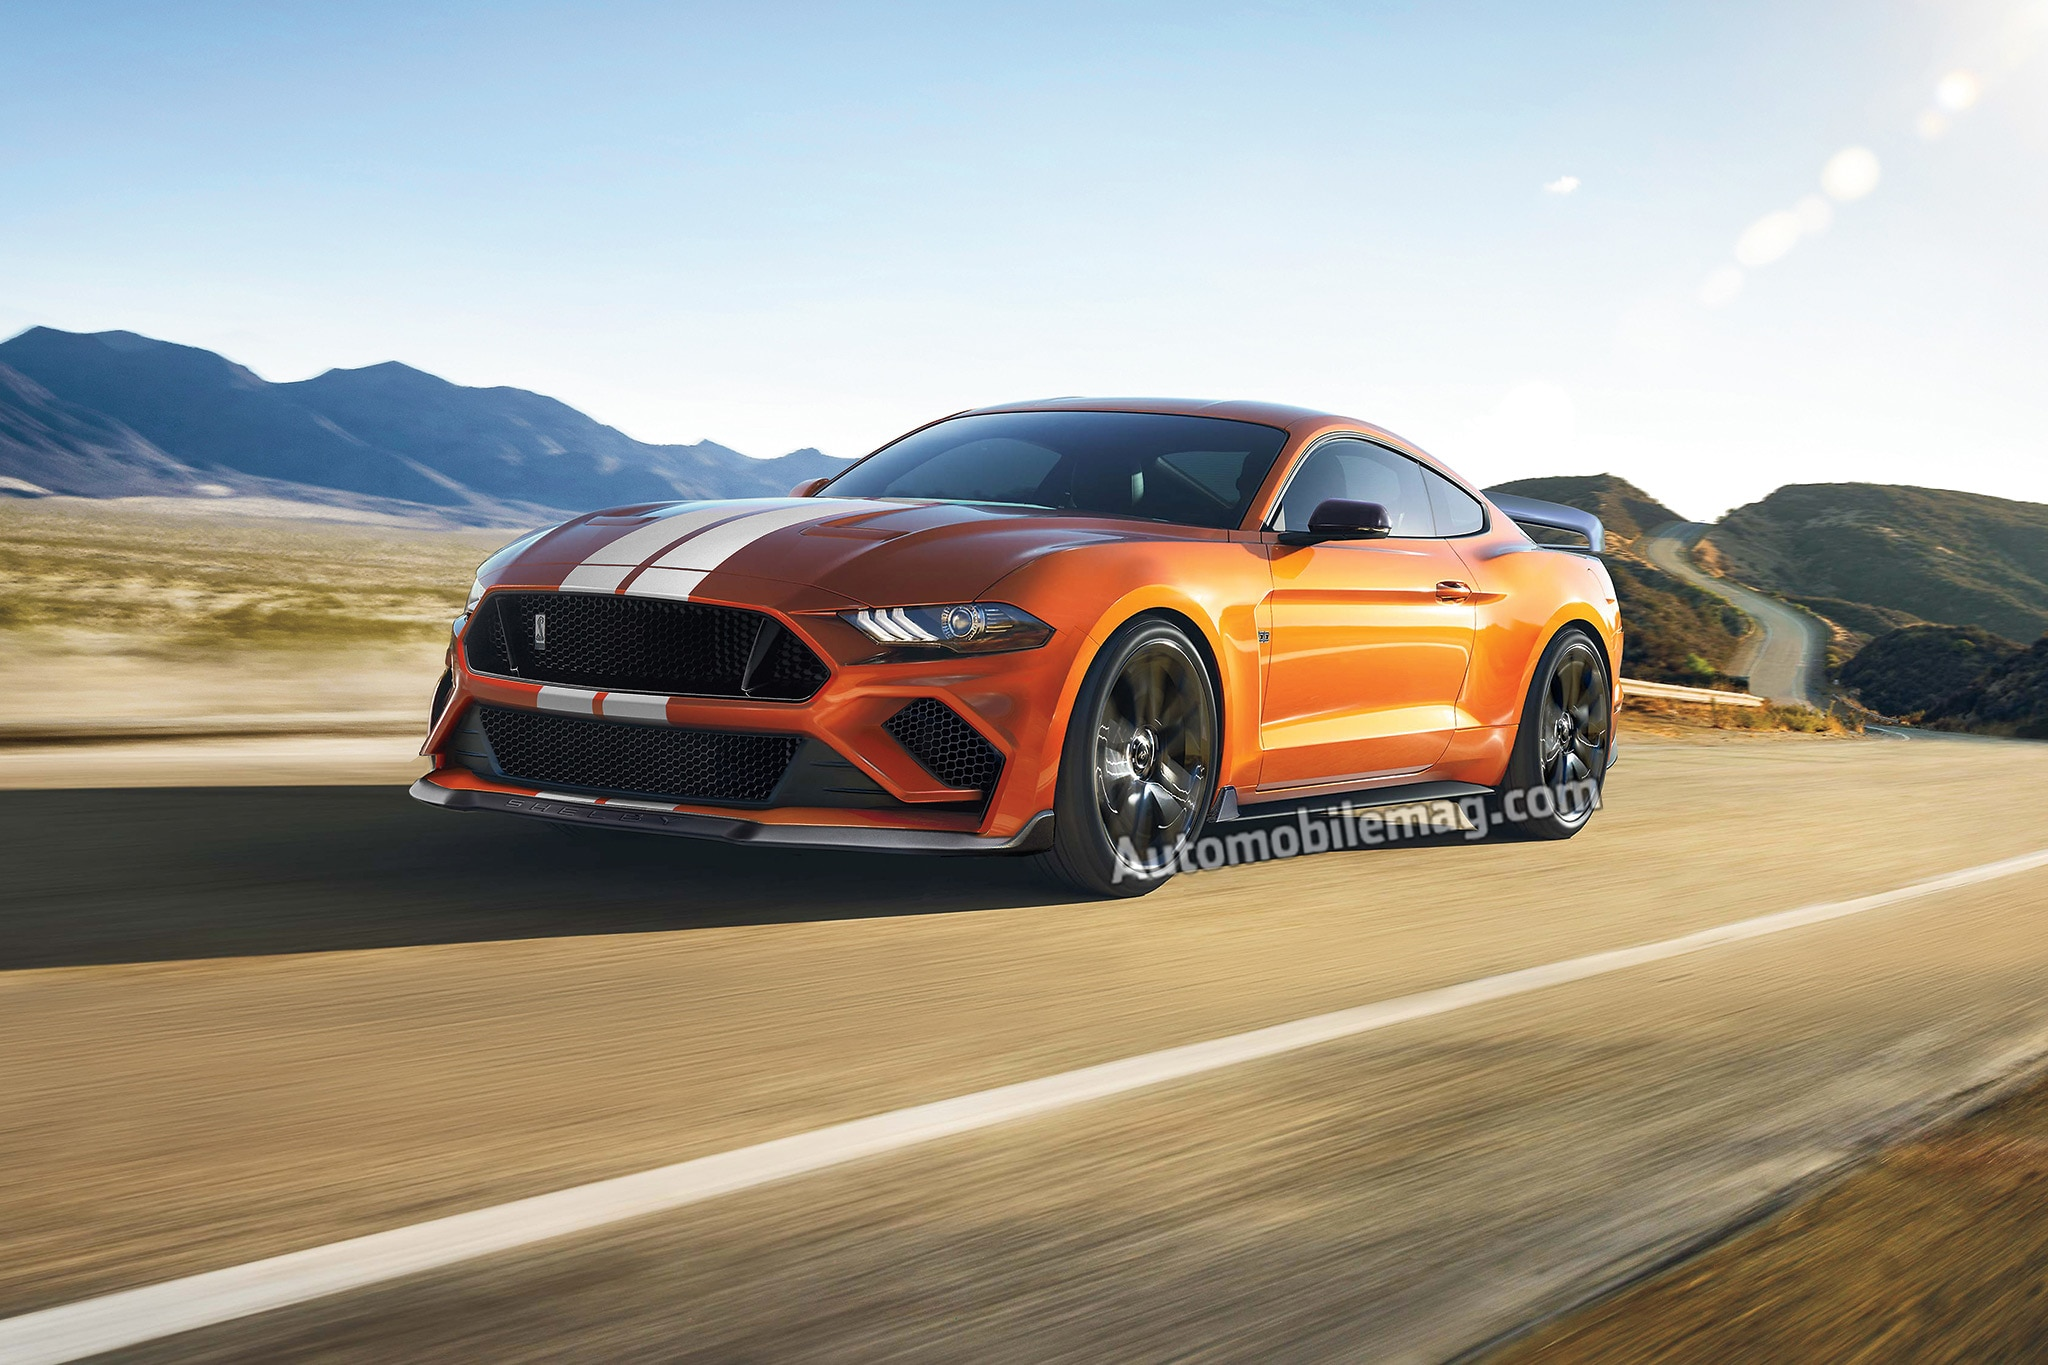 15 New 2019 Ford Mustang Shelby Gt500 Exterior